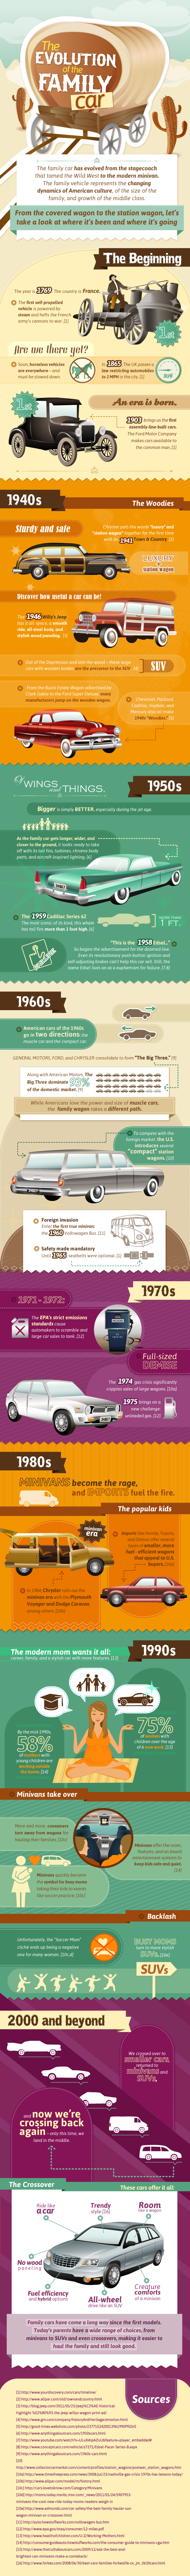 Era and Evolution of Cars